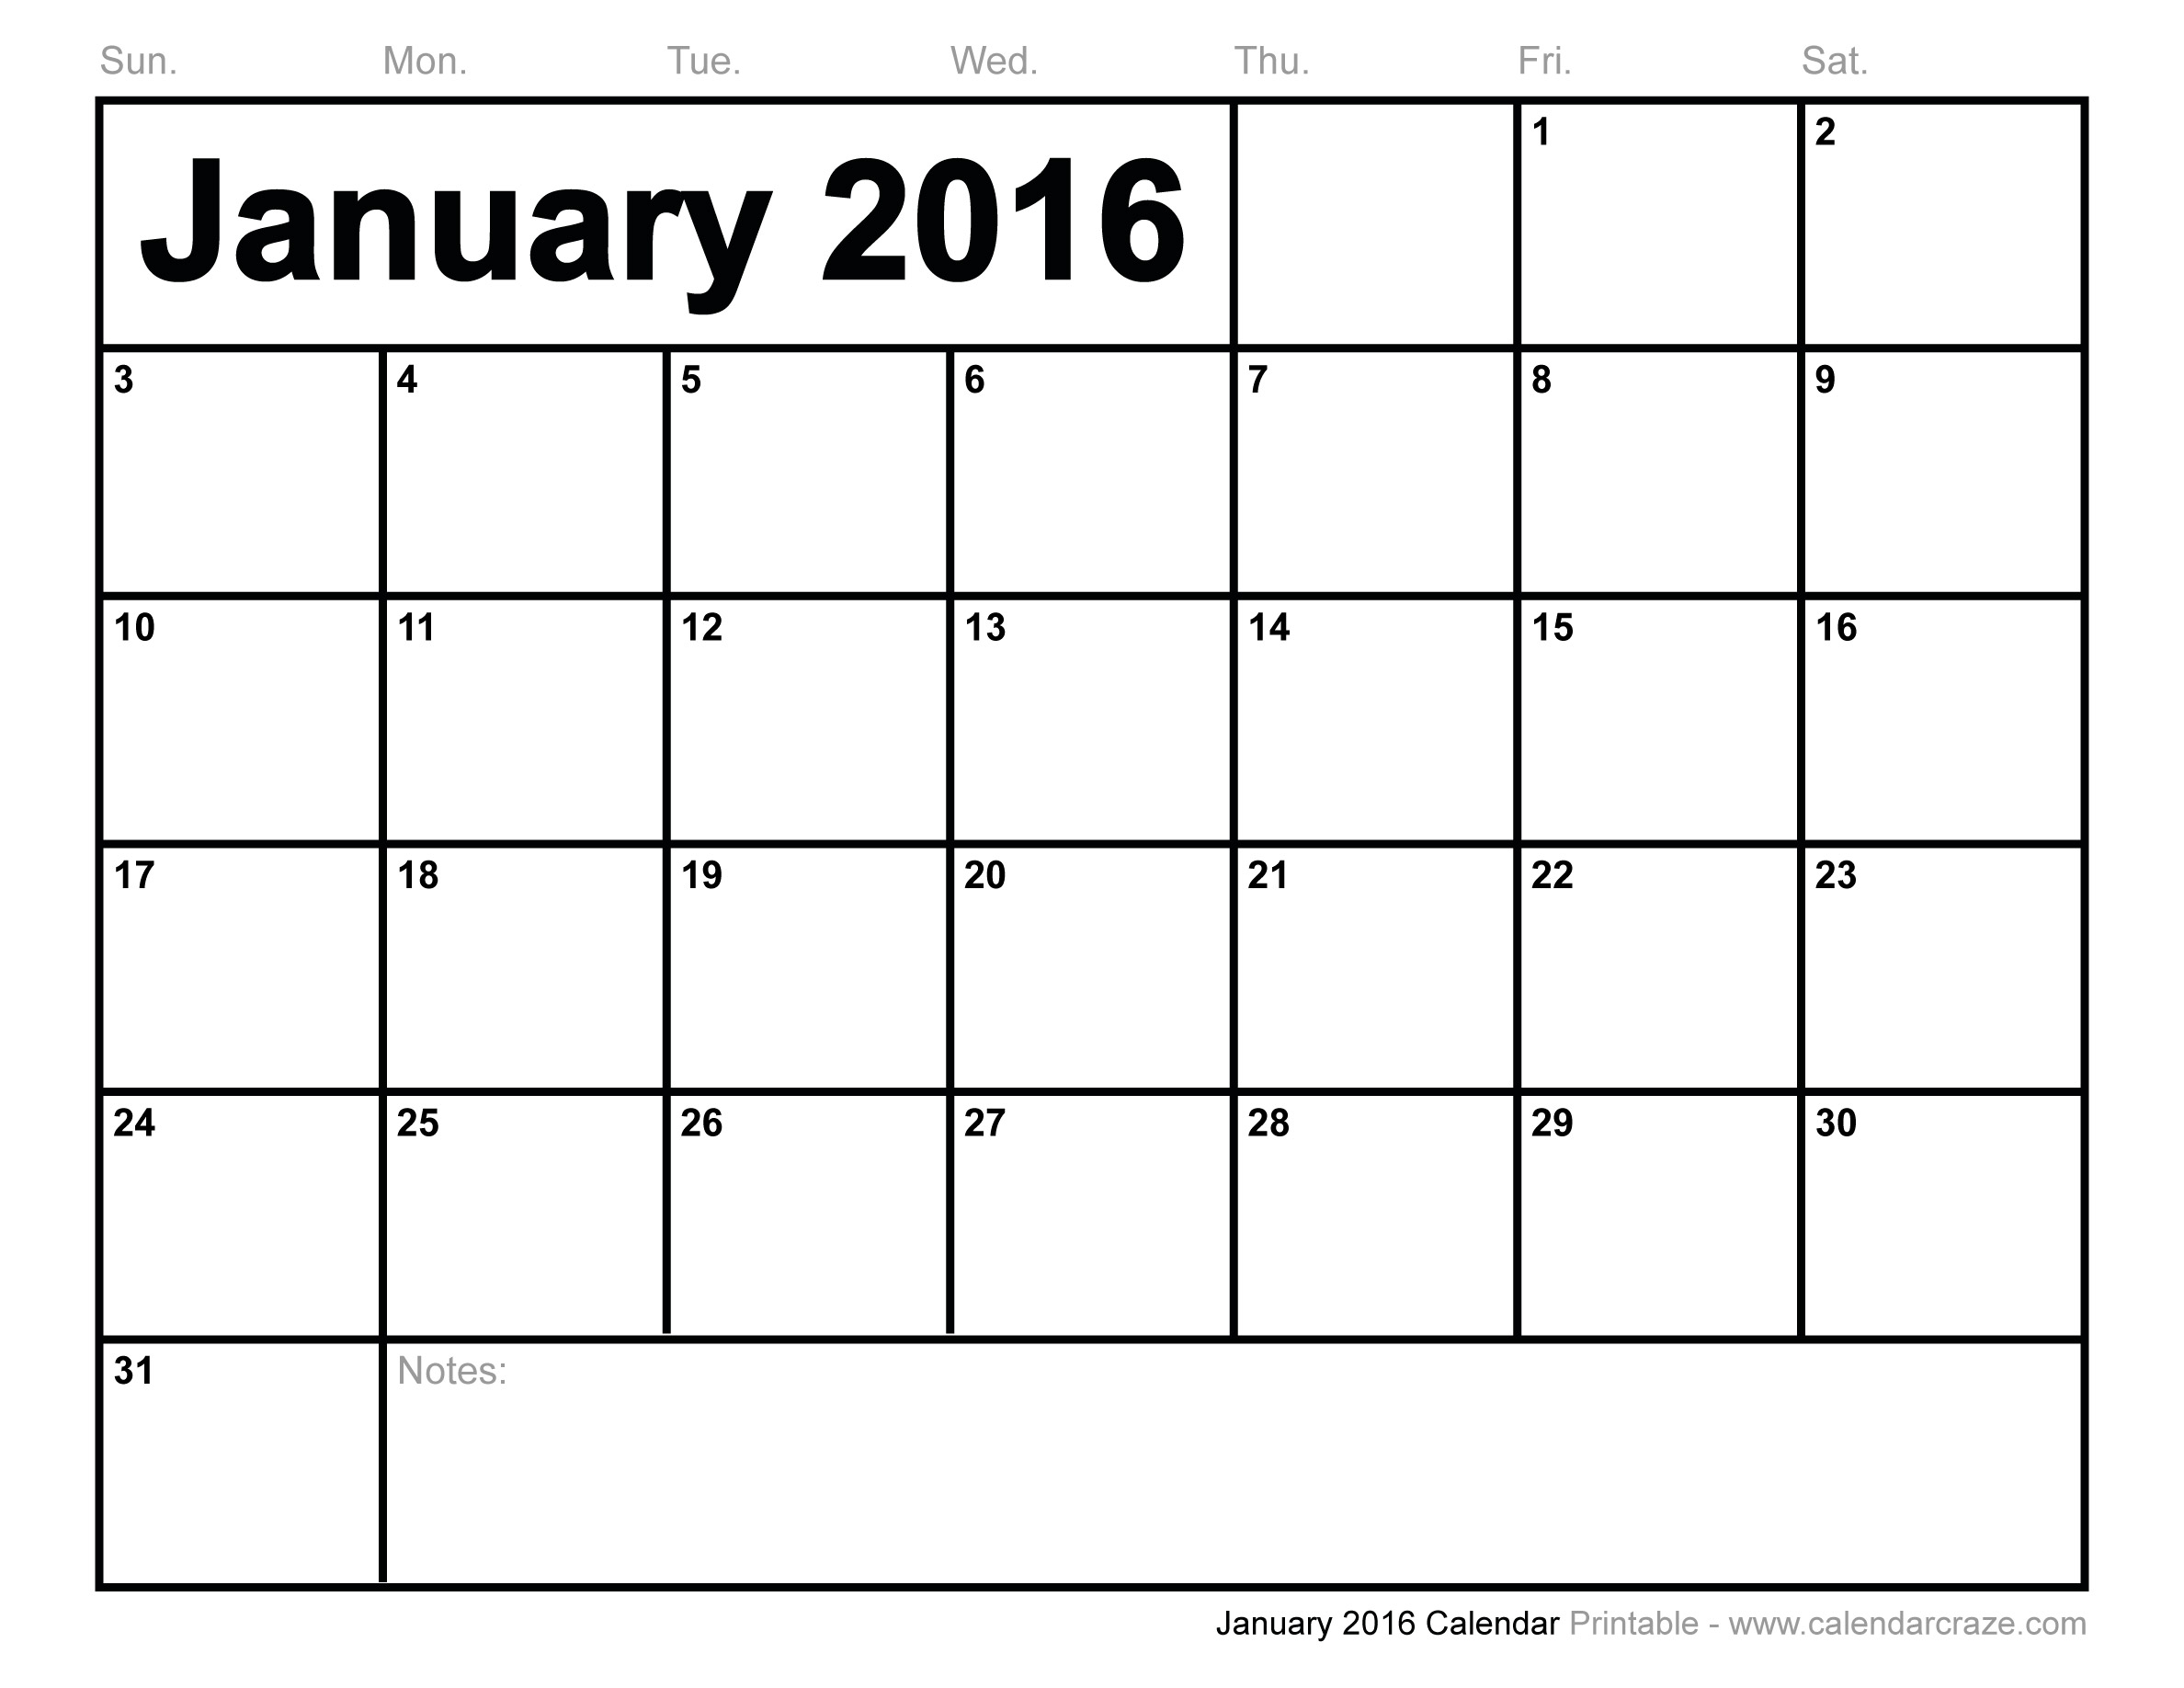 of 2016 Calendar Printable January Through December - January 2016 ...